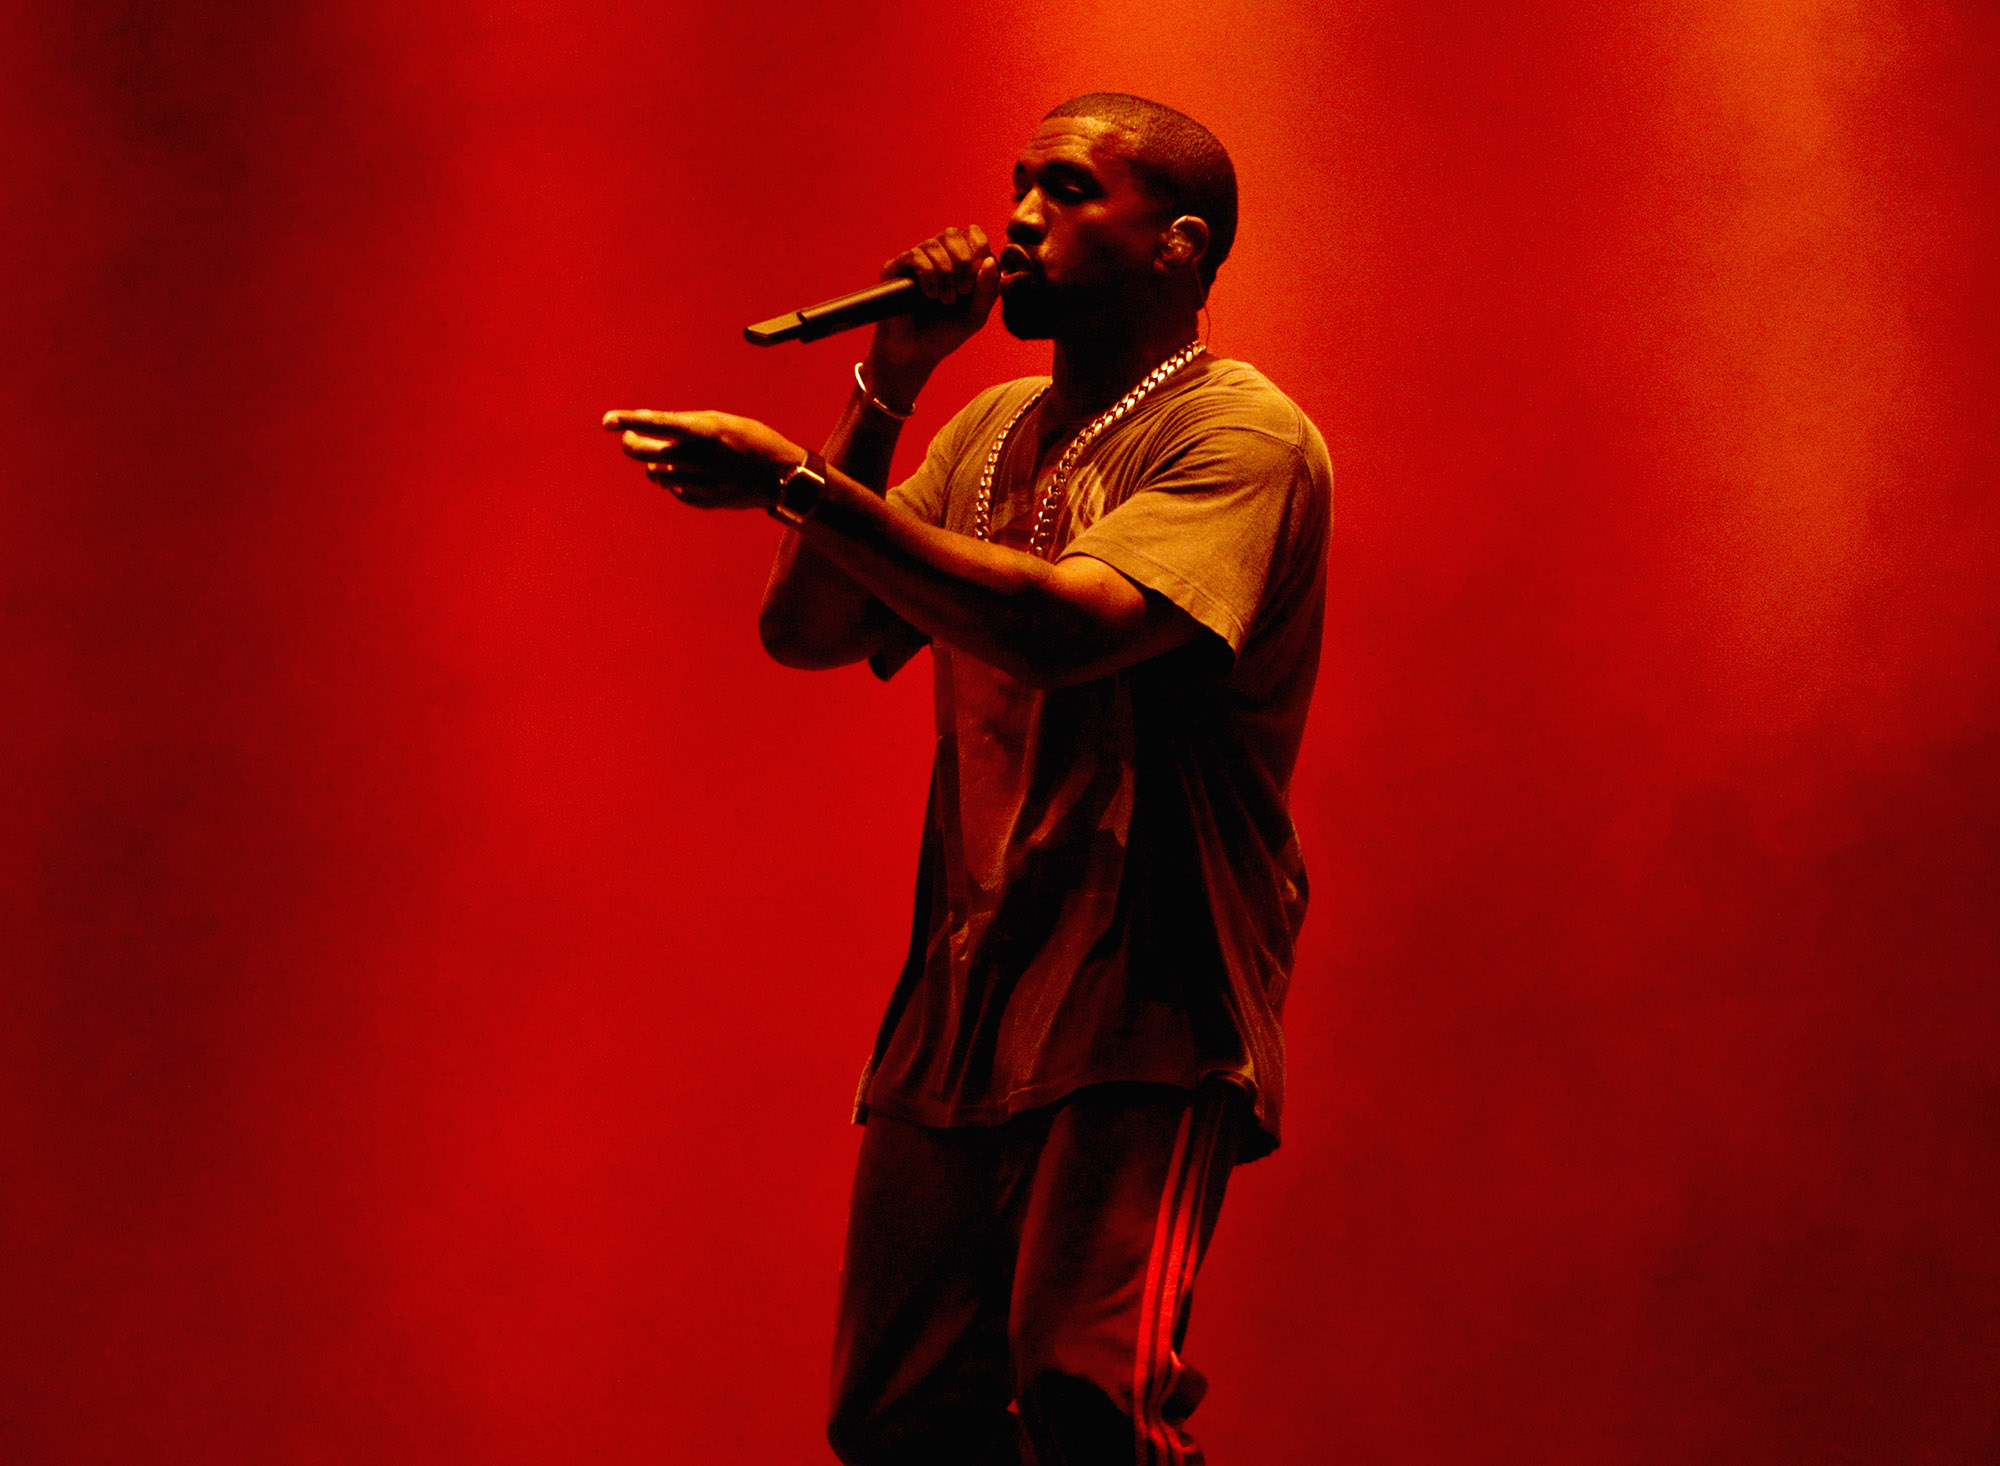 Kanye West performs onstage during The Meadows Music & Arts Festival Day 2 on October 2, 2016 in Queens, New York.  (Photo by Taylor Hill/Getty Images for The Meadows)